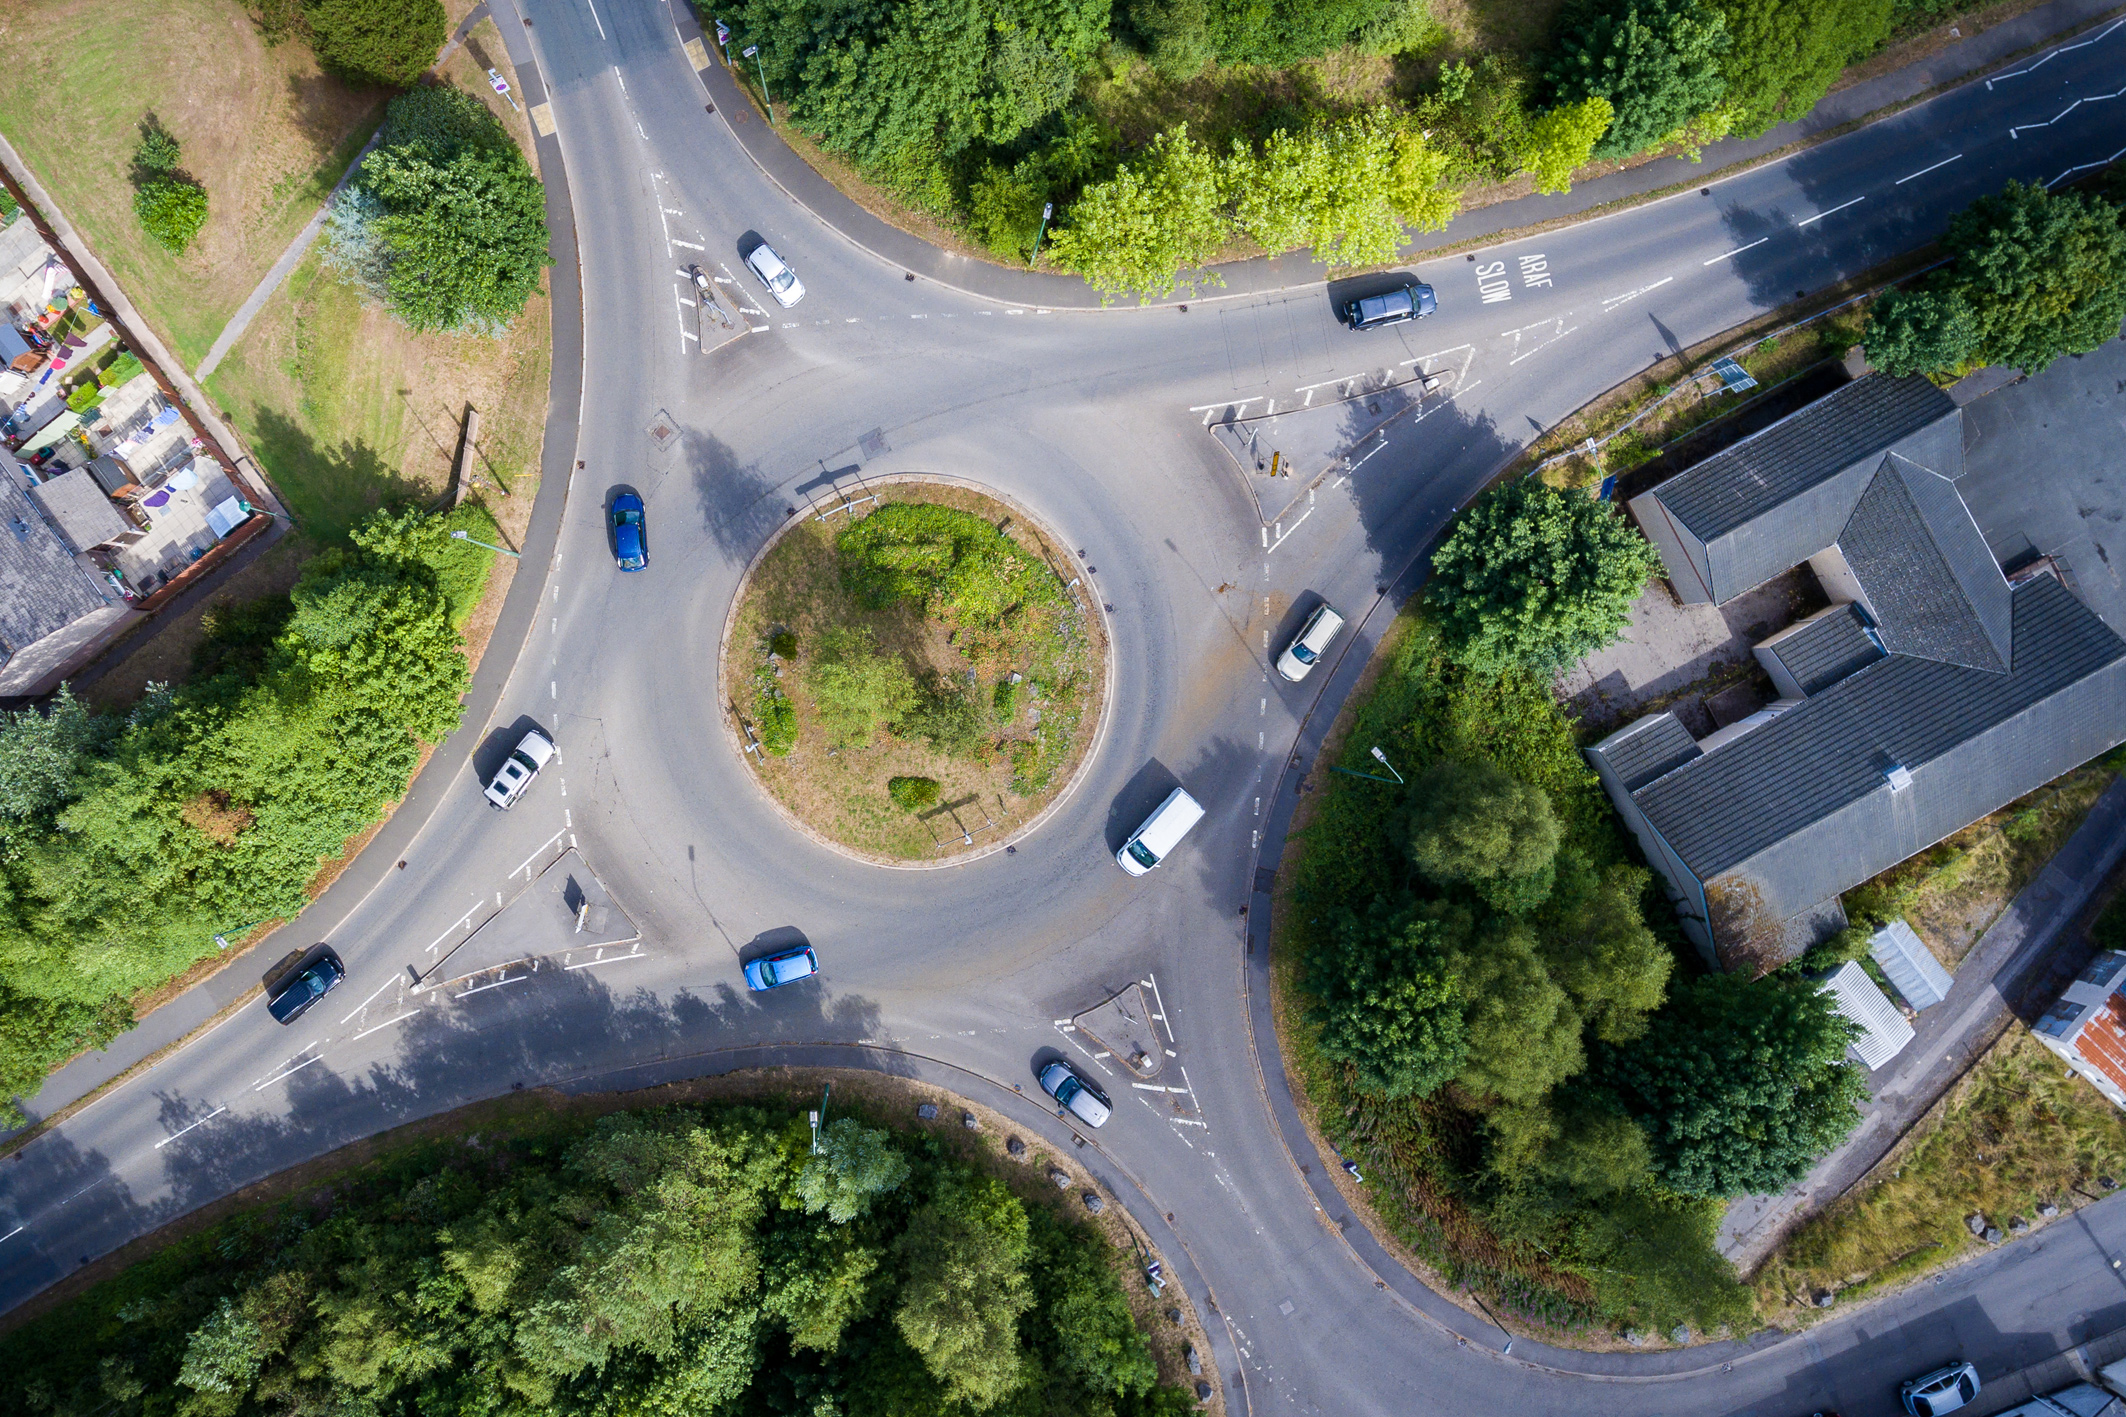 Drone view of roundabout